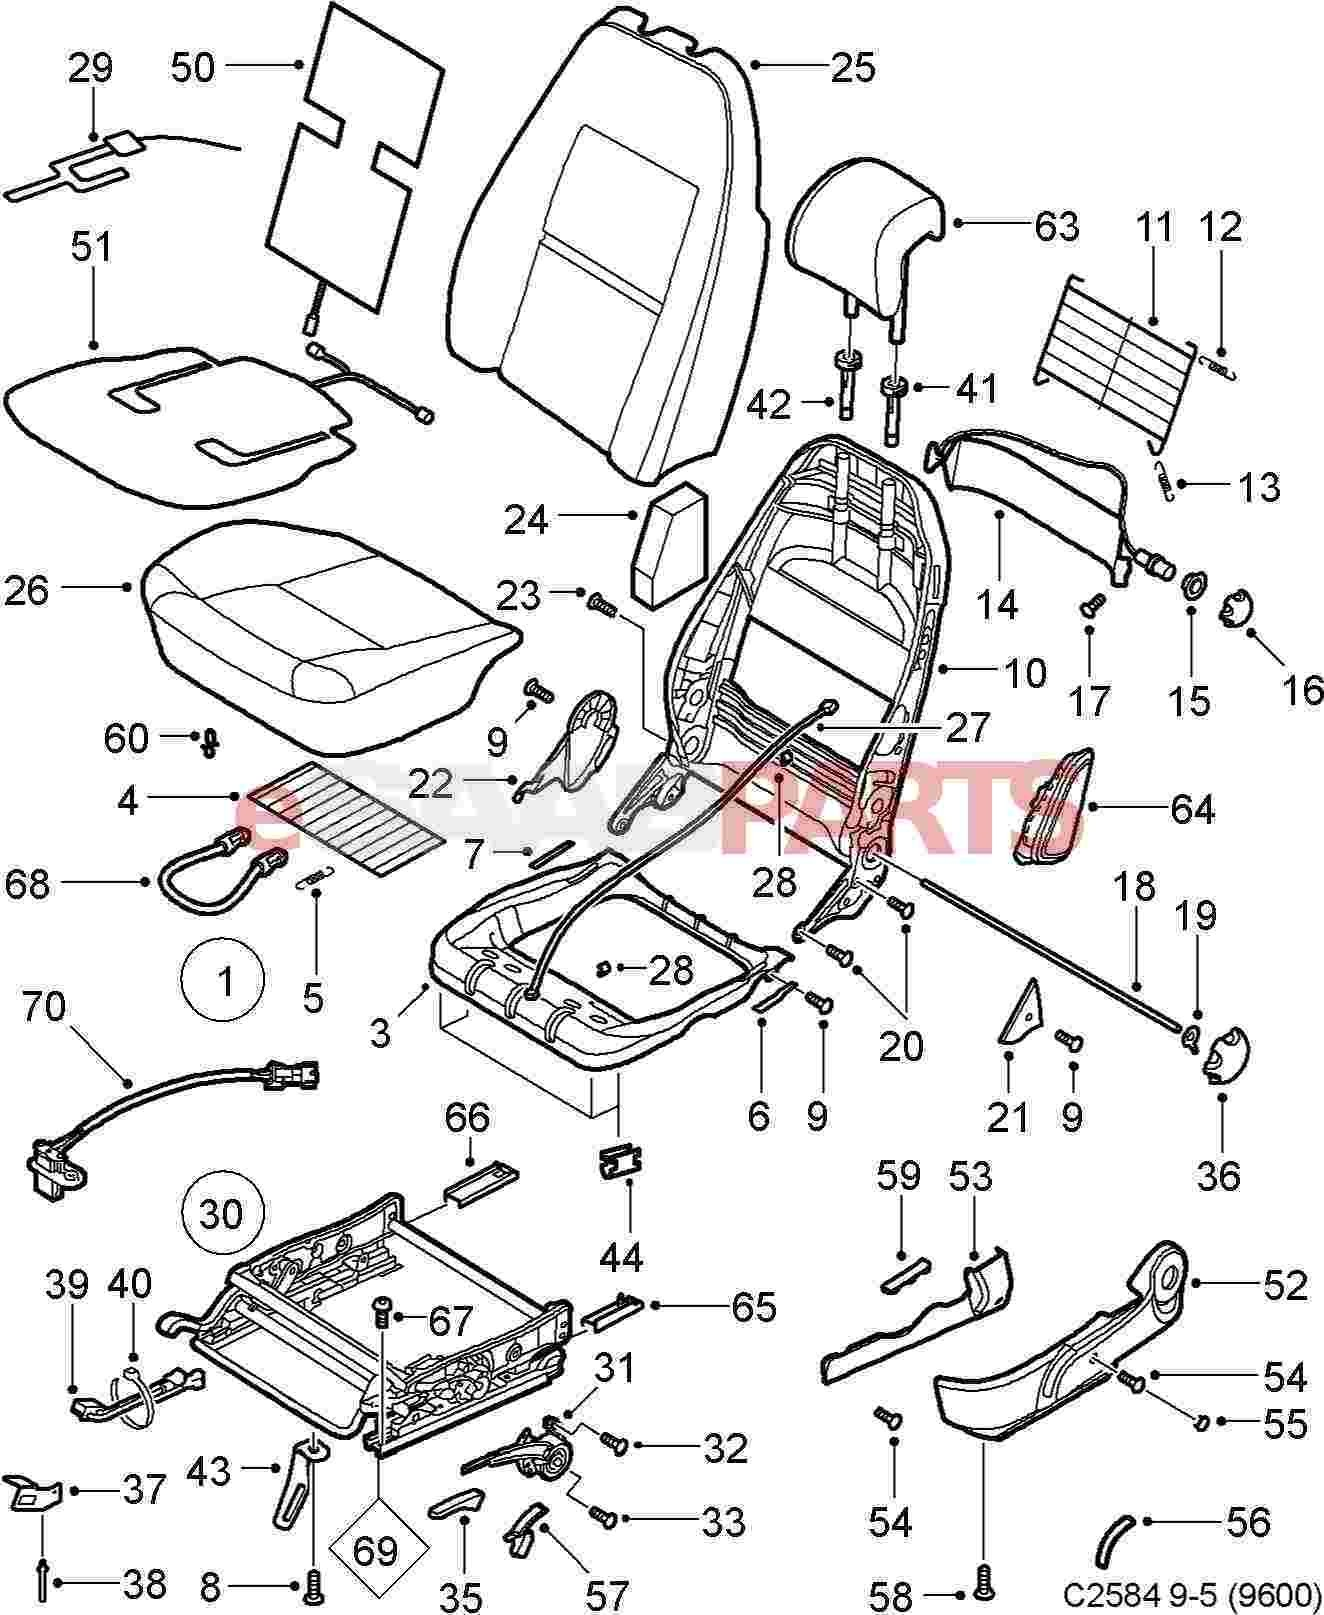 Seat Belt Parts Diagram Esaabparts Of Seat Belt Parts Diagram Ge Model Gtwn4250m1ws Residential Washers Genuine Parts